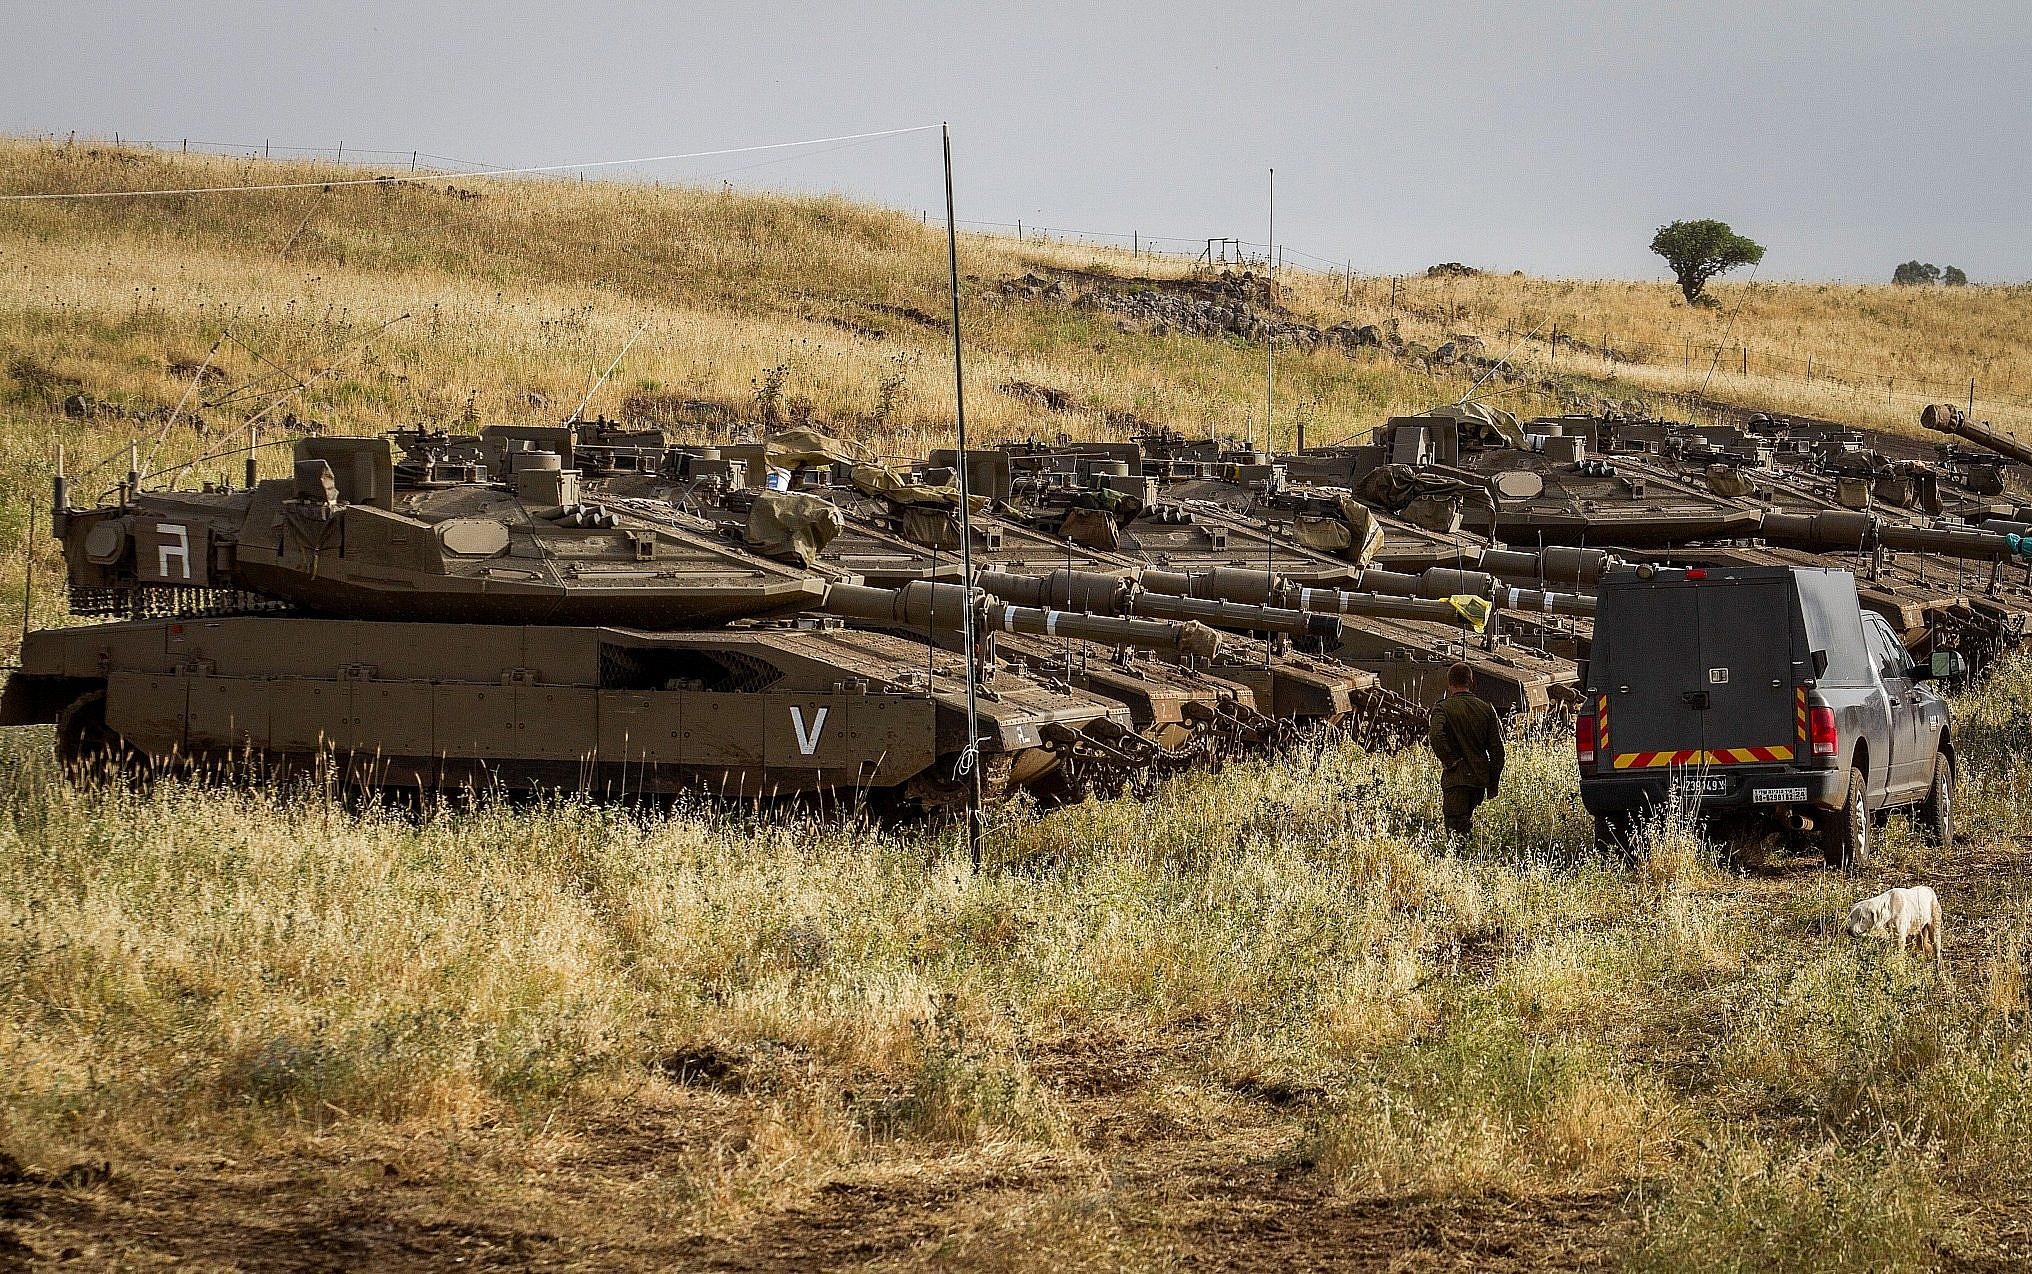 IDF soldiers beside tanks near the Israeli-Syrian border in the Golan Heights on May 10, 2018 (Basel Awidat/Flash90)